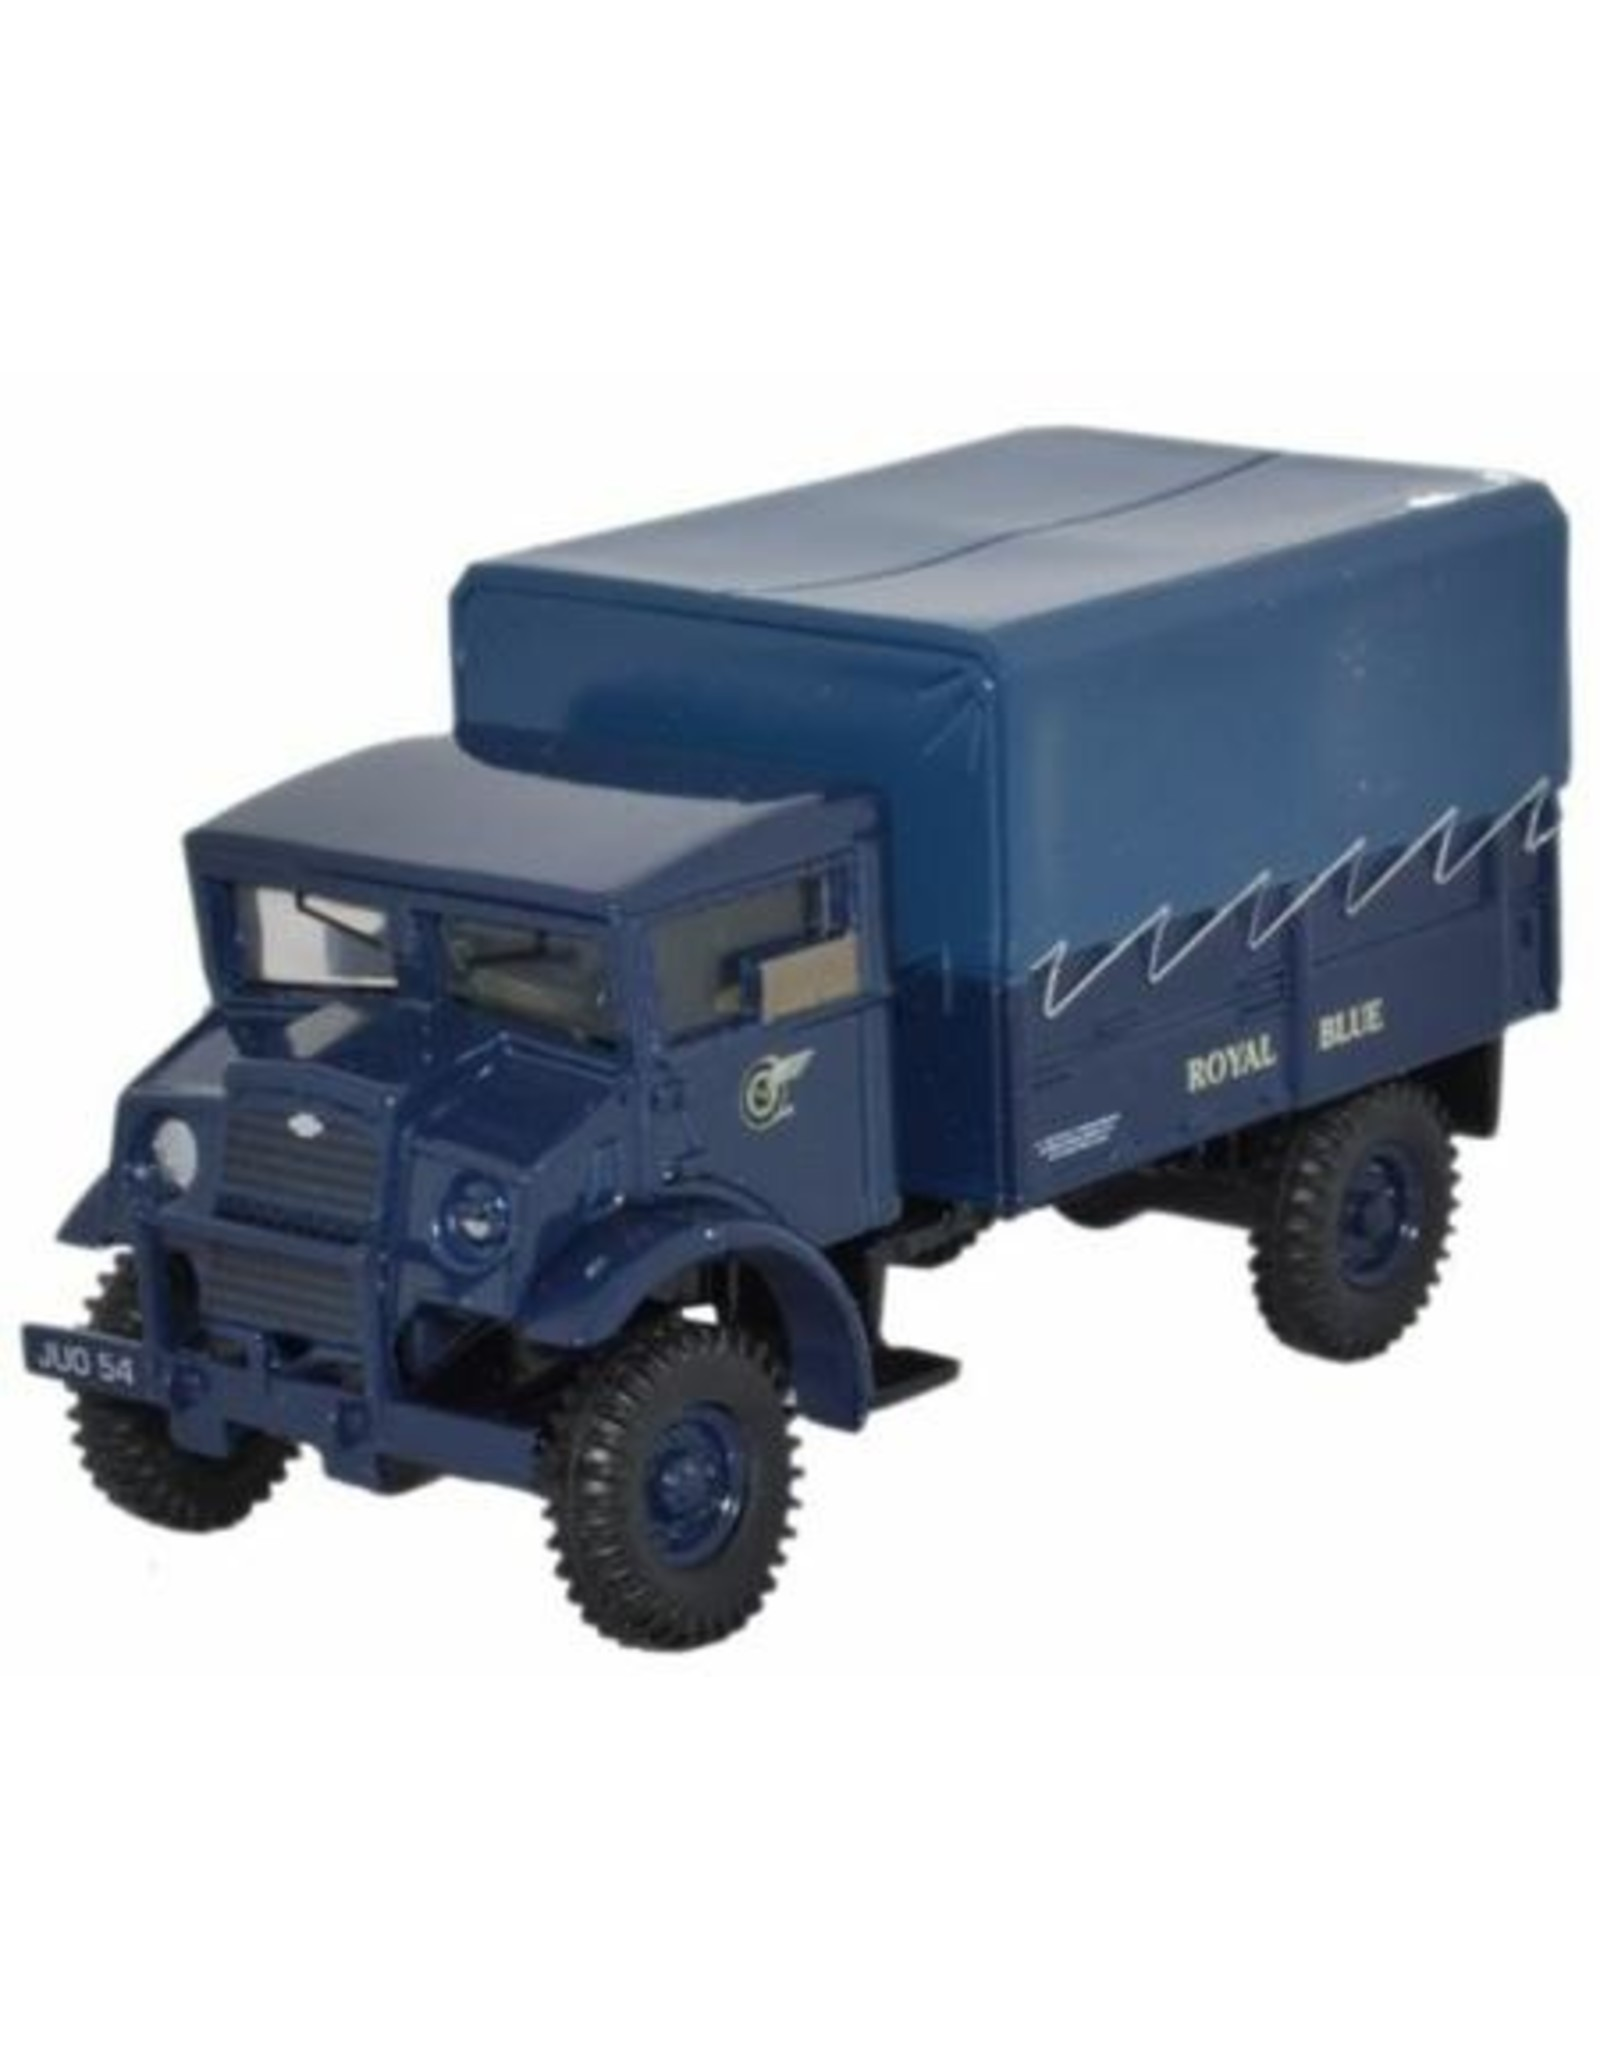 Canadian Military Patern(Chevrolet) CMP LAA TRACTOR(Royal blue)